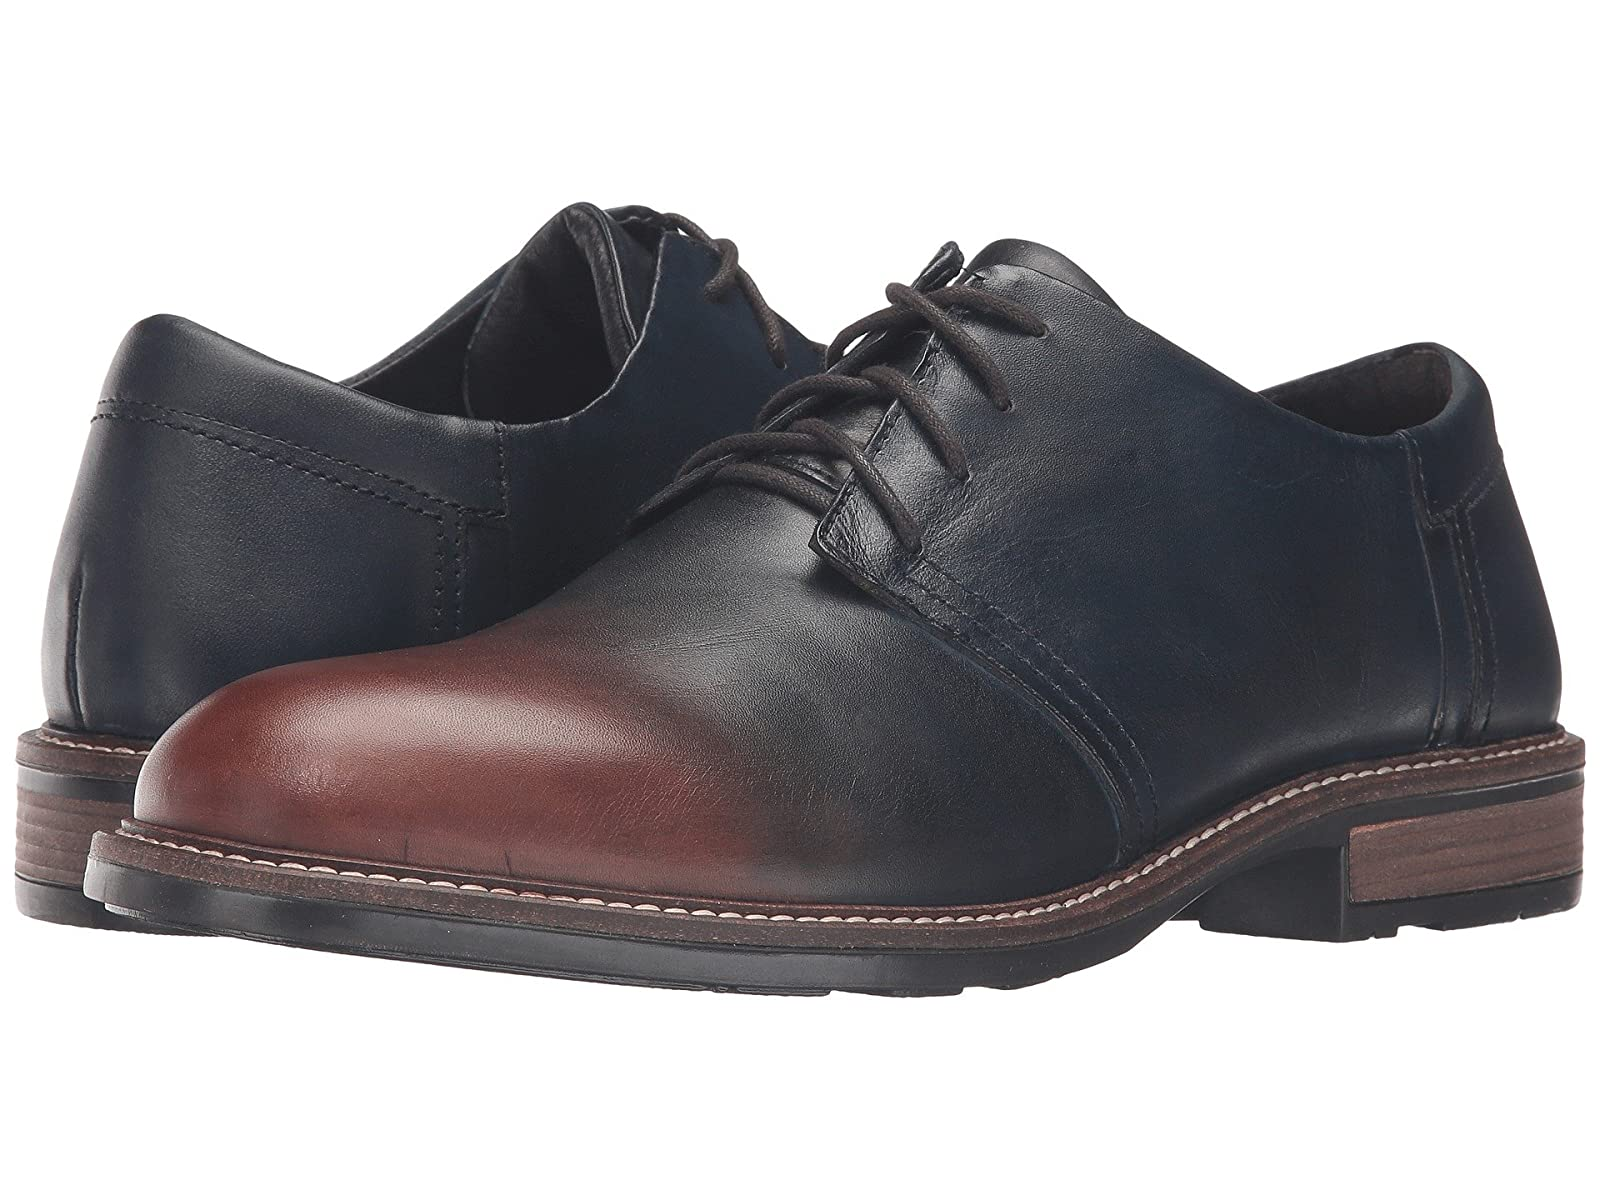 Naot Chief - Hand CraftedAtmospheric grades have affordable shoes